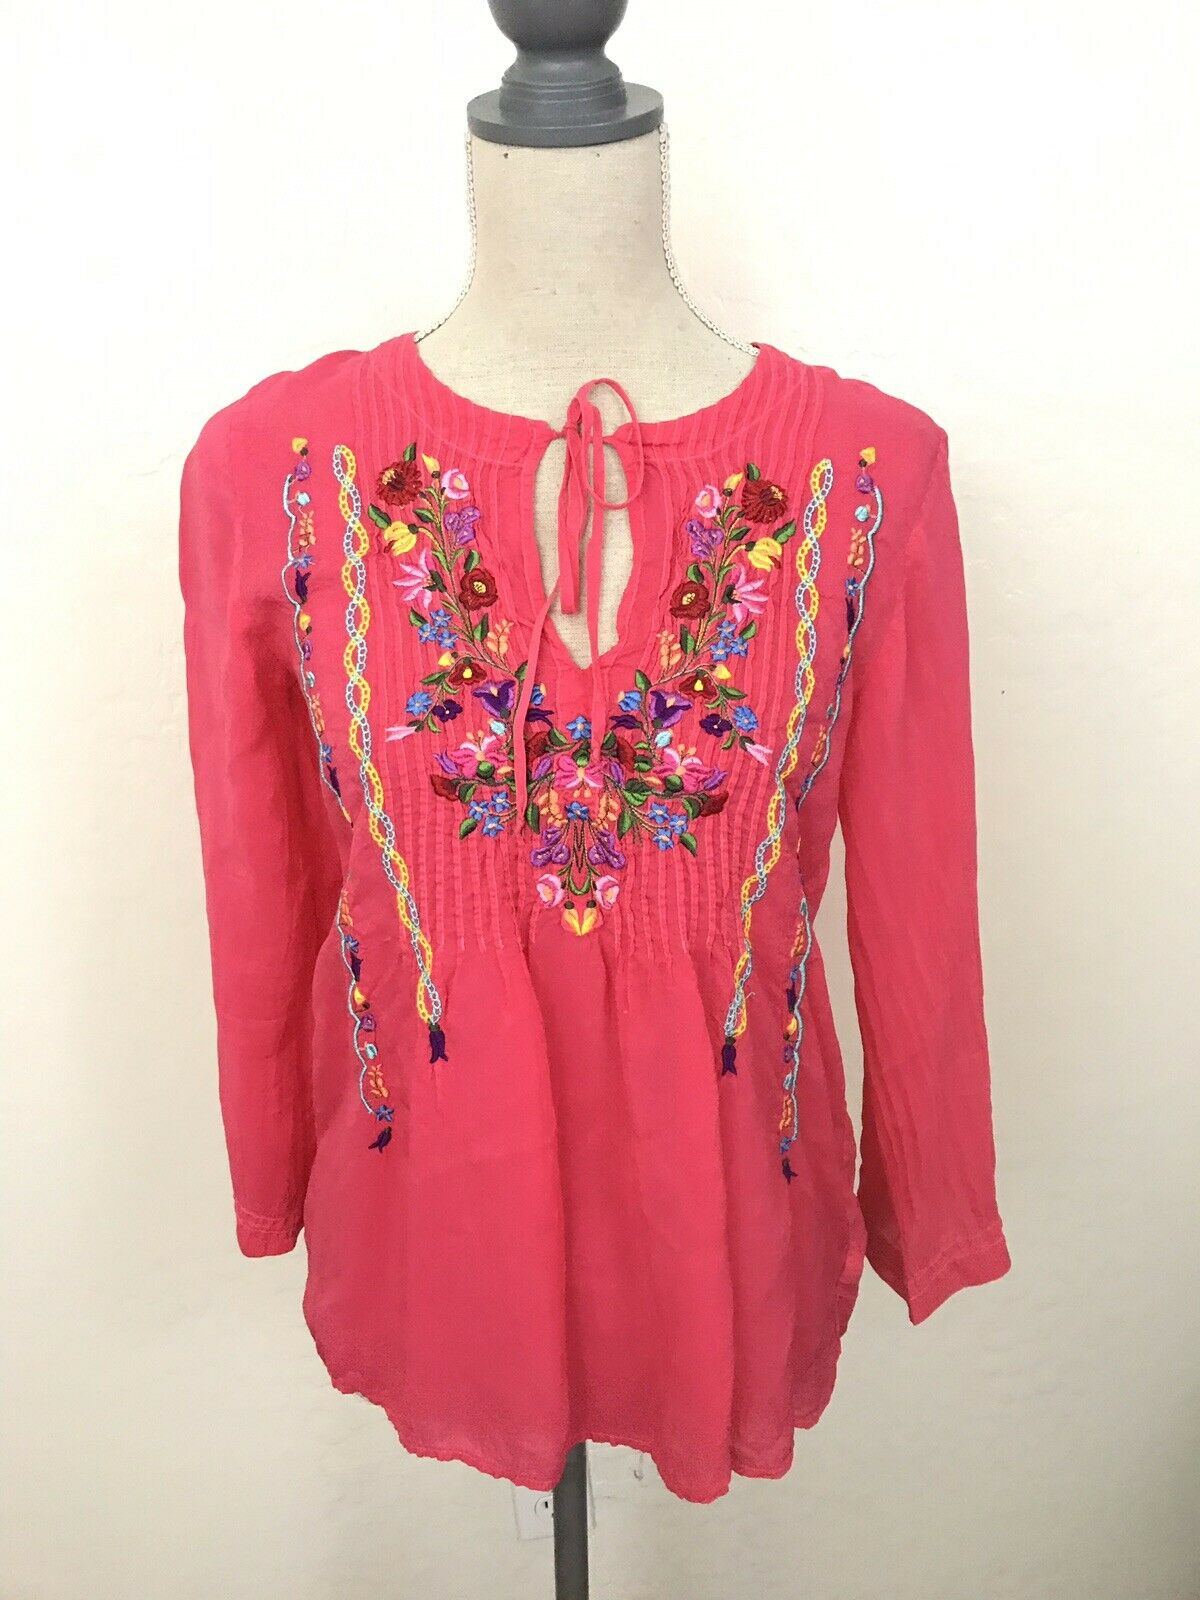 Johnny Was Bright Rosa Embroiderot Floral Peasant Blouse Sz XS